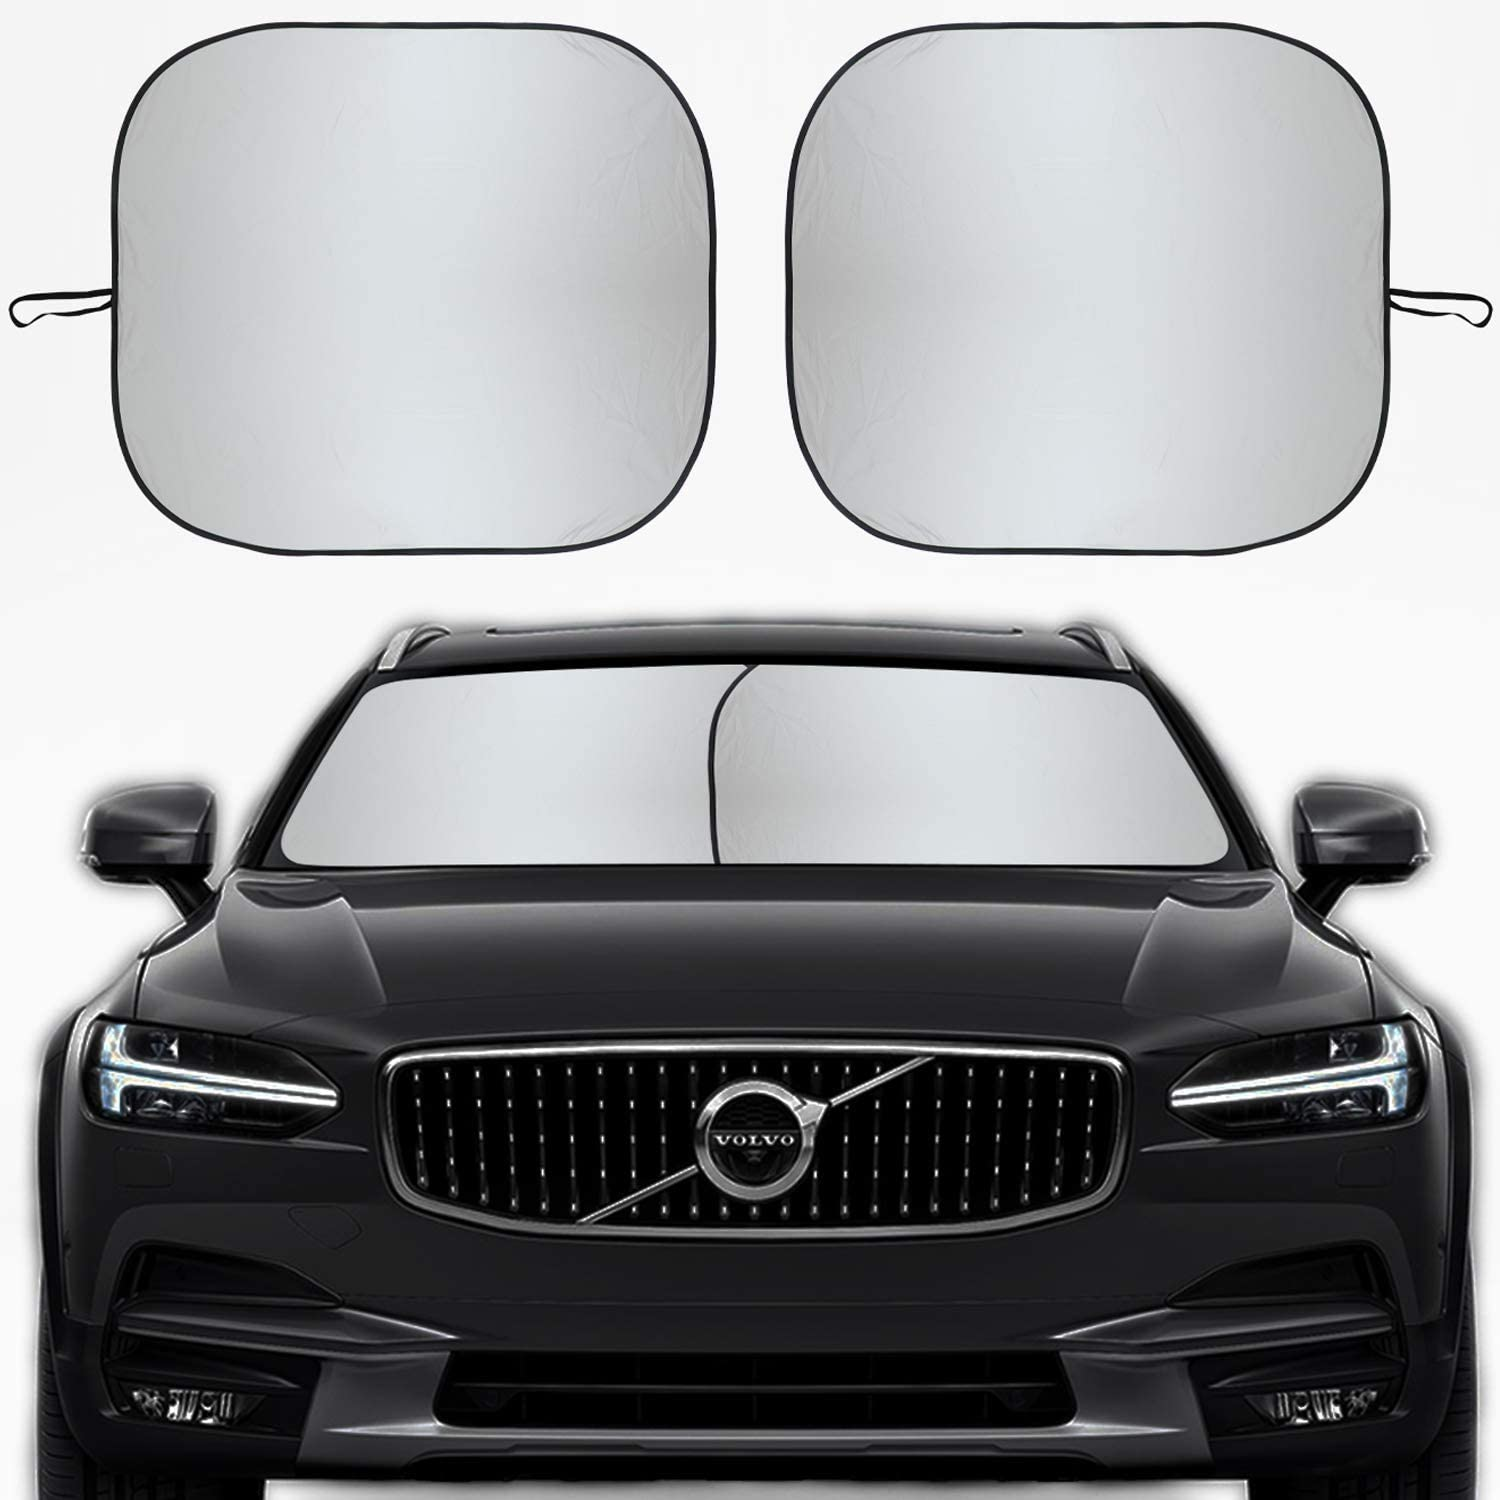 2020 Upgraded Car Windshield Sun Shade for UV Protection and Heat Reflector Keep Your Vehicle Cool Kribin 2 Pack Windshield Sunshade